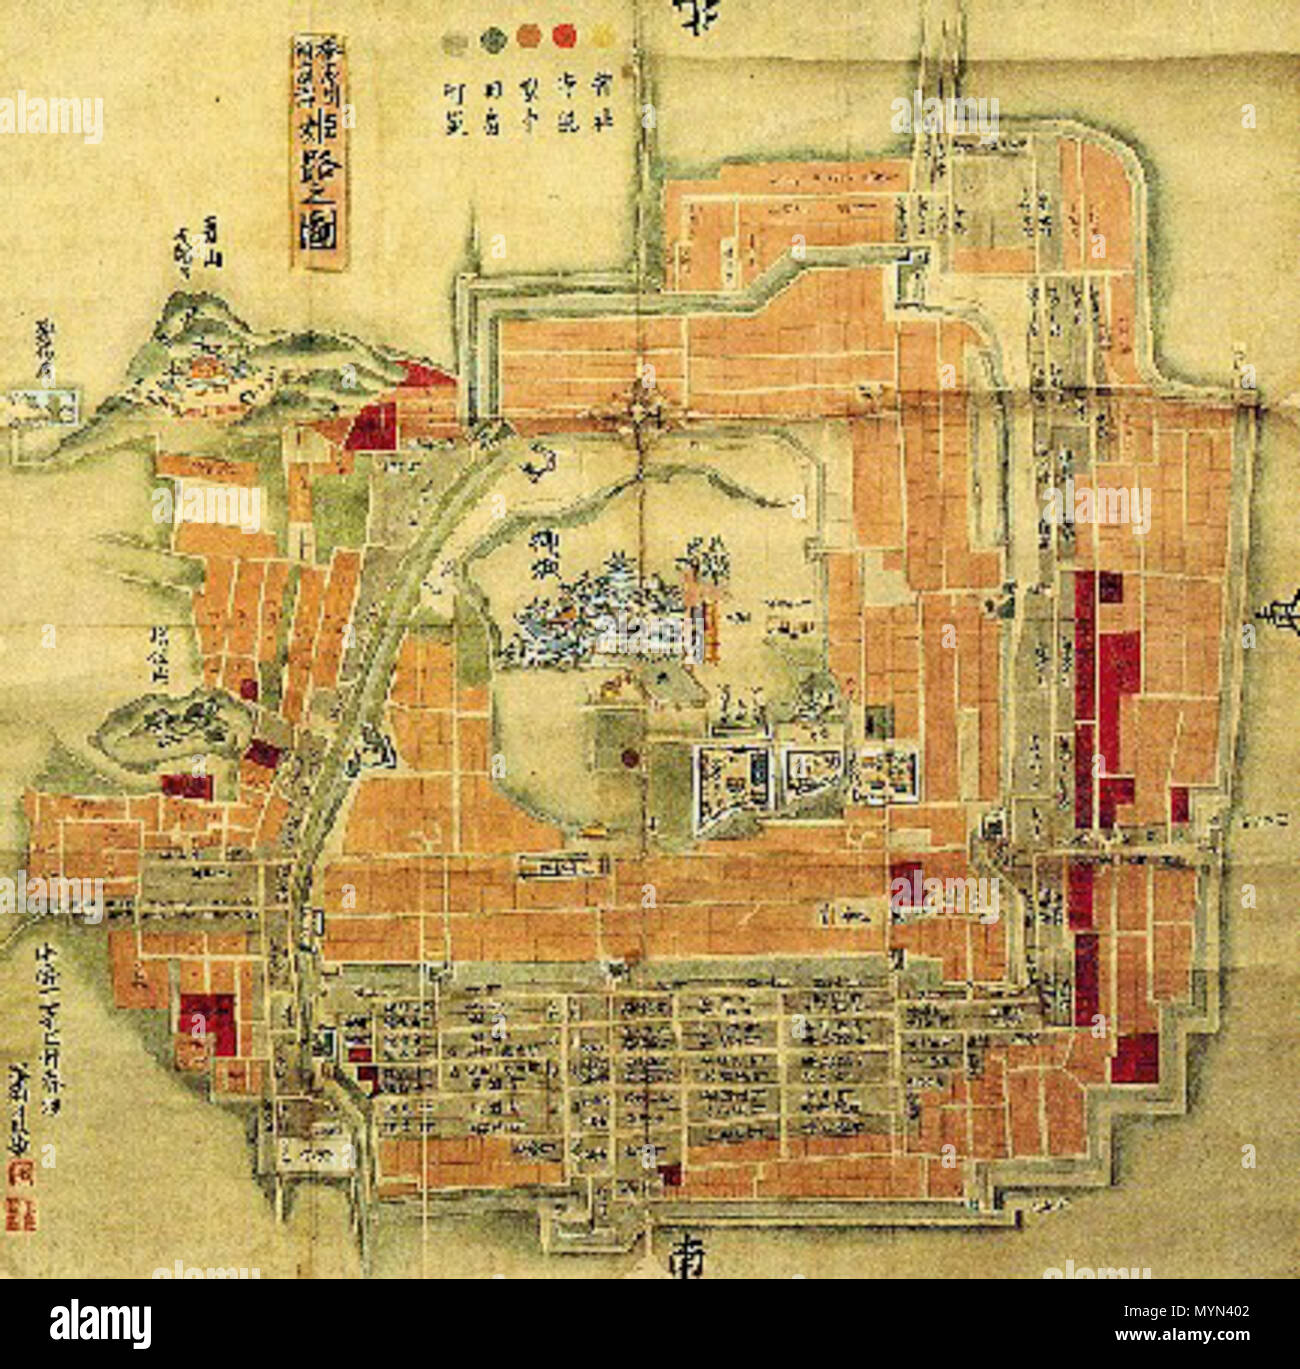 397 Old map of Himeji castle Stock Photo: 189163522 - Alamy Map Of A Castle on map of a school, map of european castles, map of a restaurant, map of castles in england, map of a submarine, map of a dragon, map of a stadium, map of a medieval town, map of castles in germany, map of castles in ireland, elemental air castle, map of a cathedral, map of a volcano, map of a theater, map of a temple, map of a hospital, map of roman ruins, map of a tavern, map of a mountain, map of a mansion,